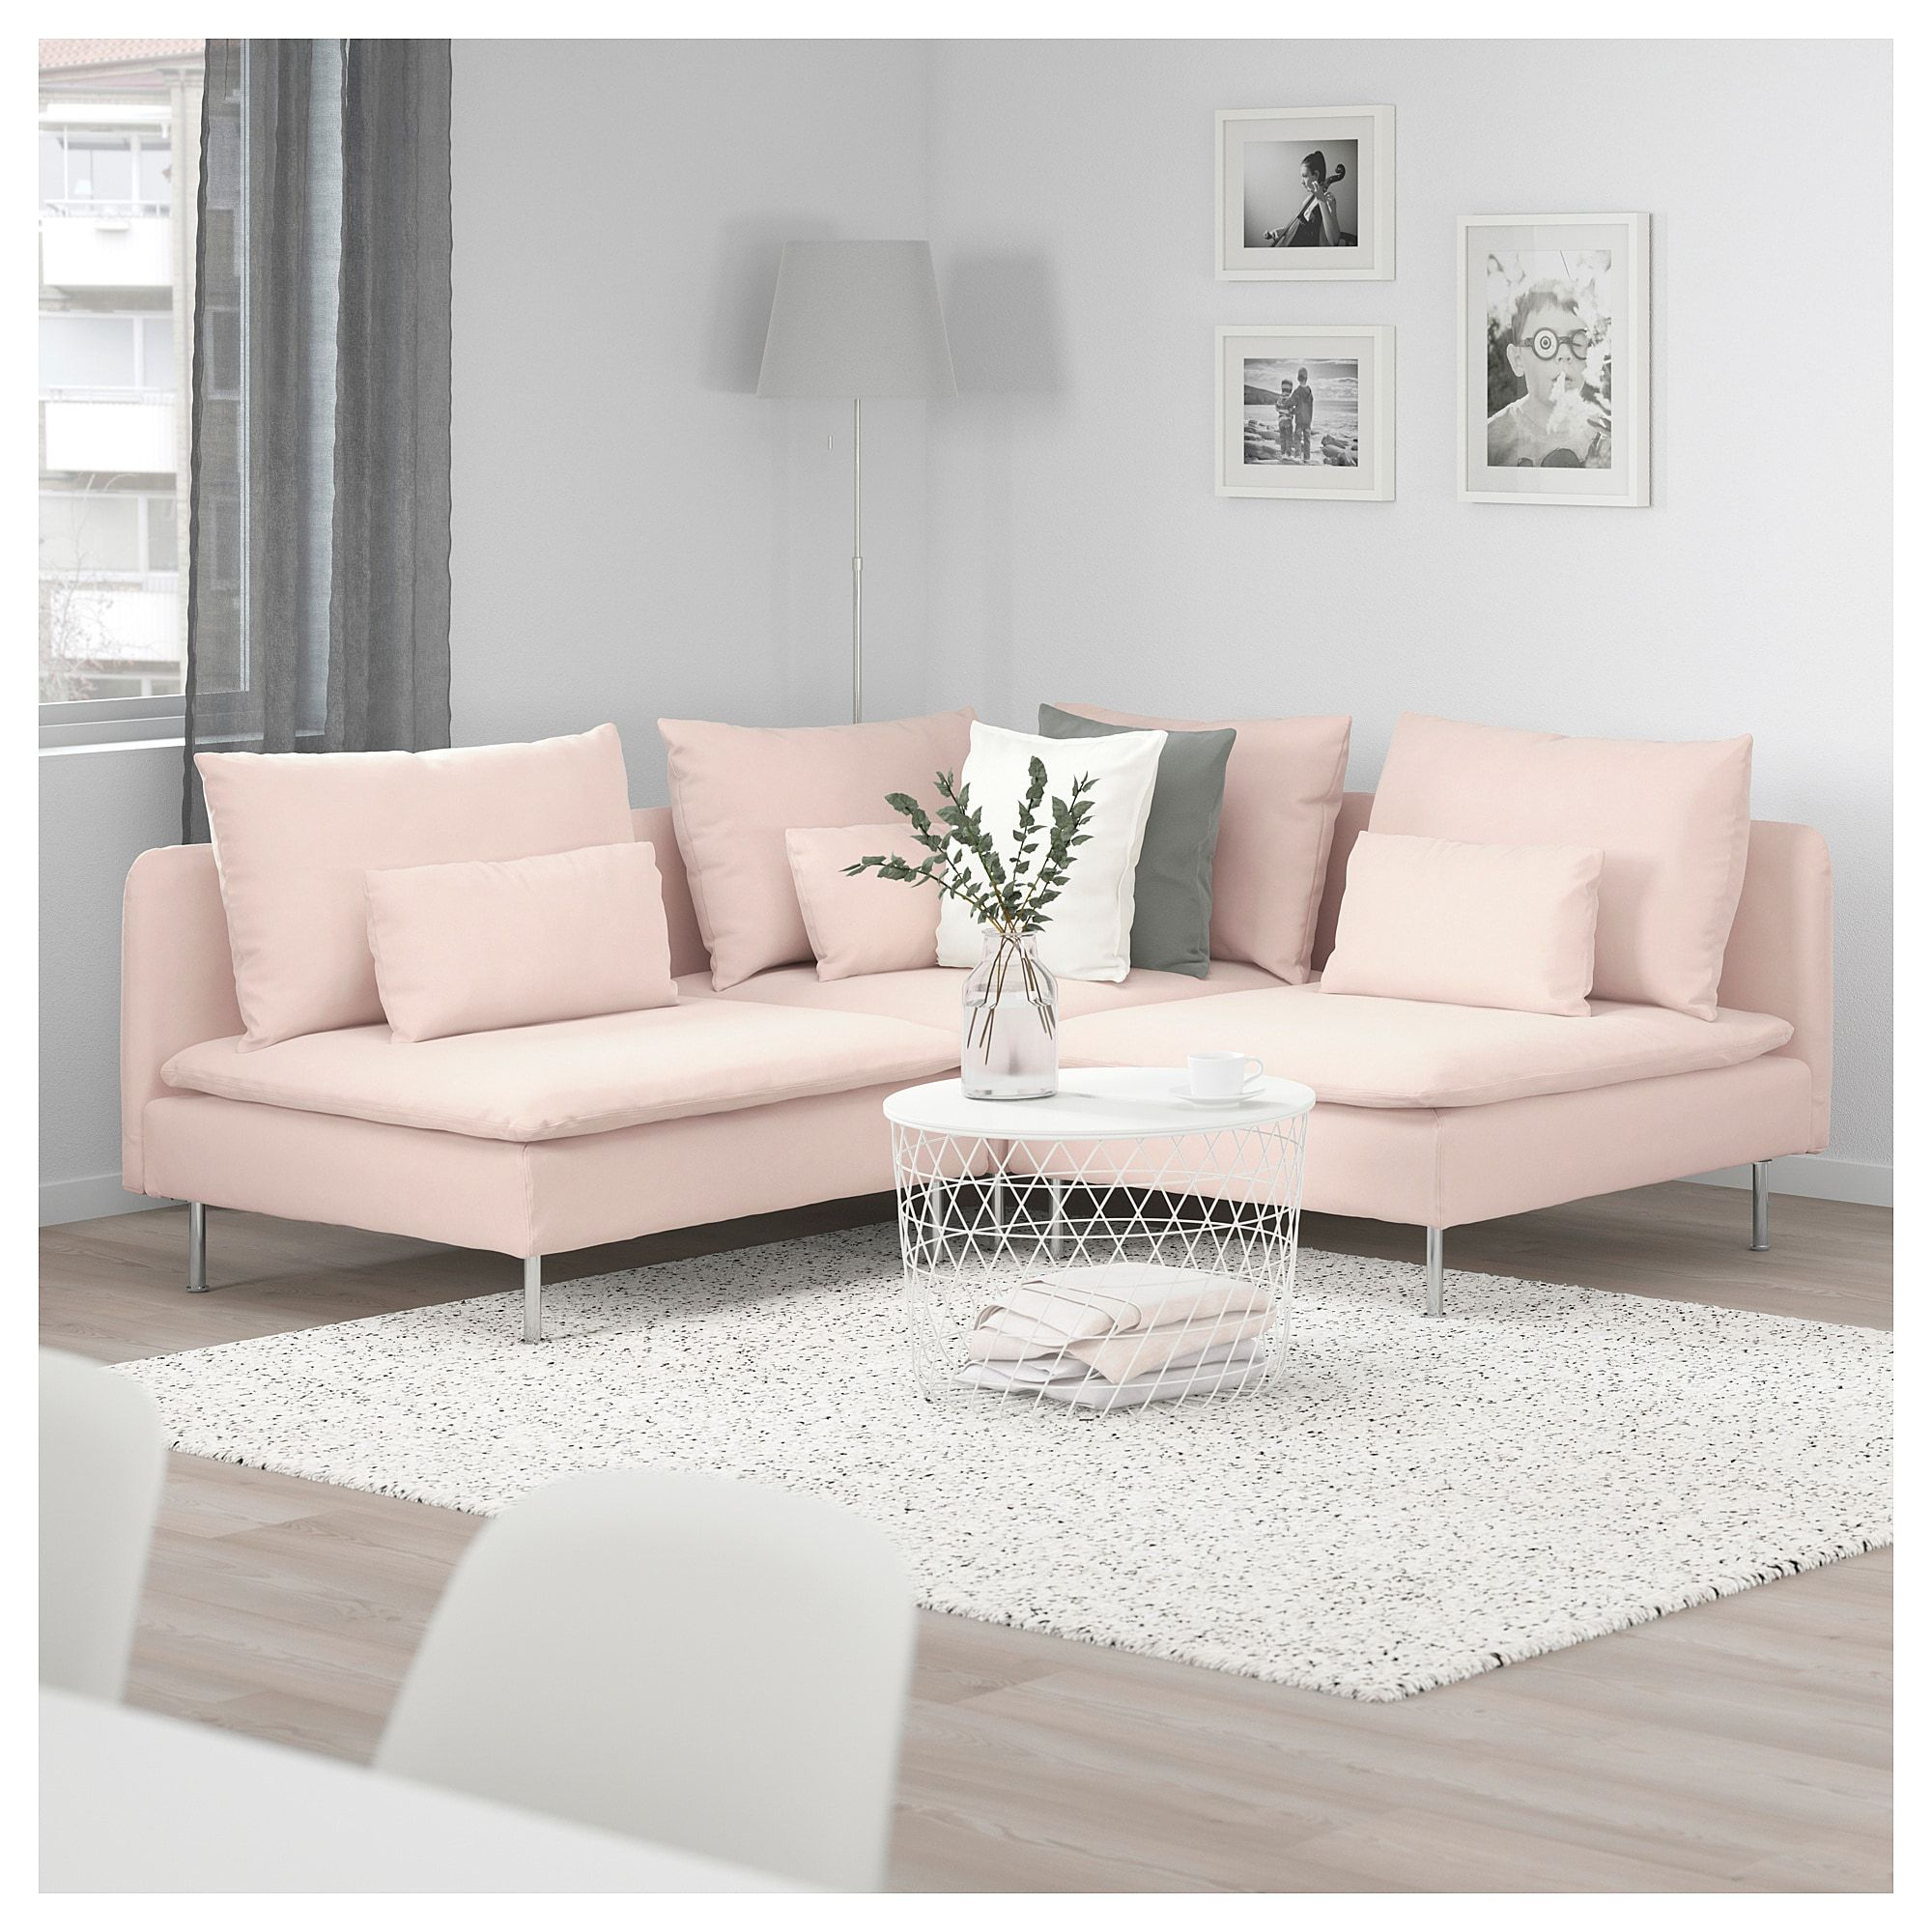 Soderhamn Sectional 3 Seat Corner Samsta Light Pink Ikea Living Room Decor Cozy Living Room Decor Apartment Living Room Designs